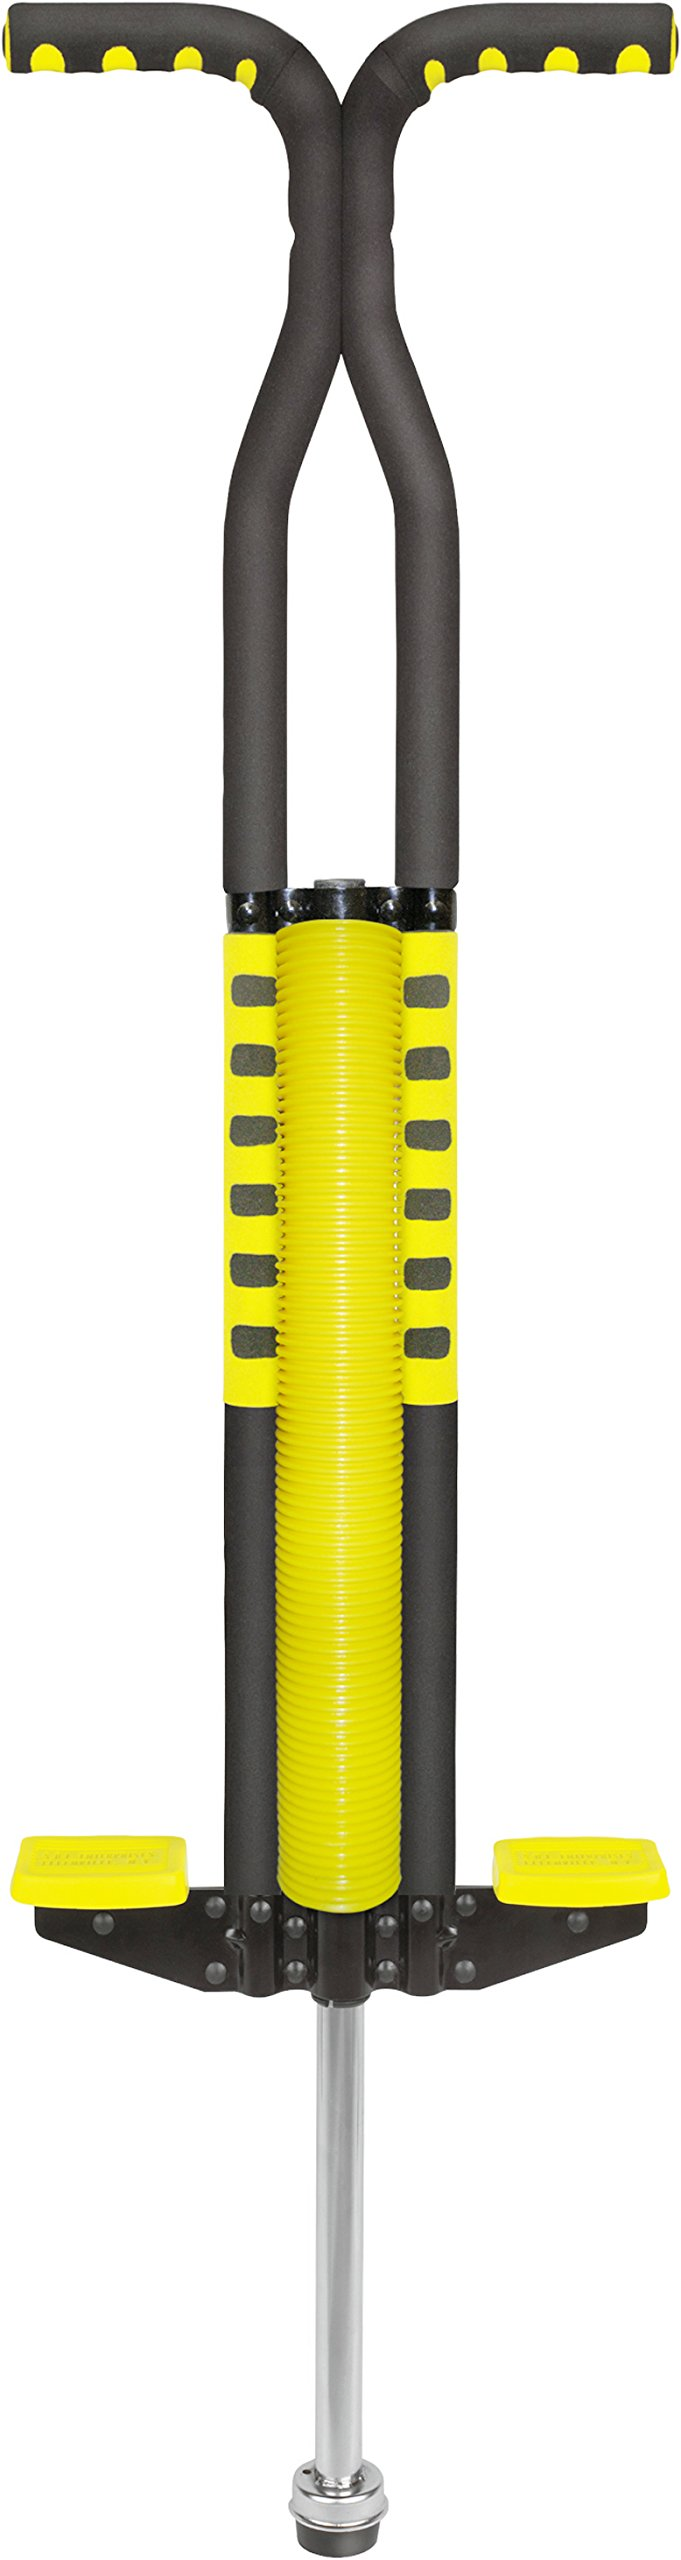 Flybar Master Foam Covered Yellow Pogo Stick from (80-160 lbs)